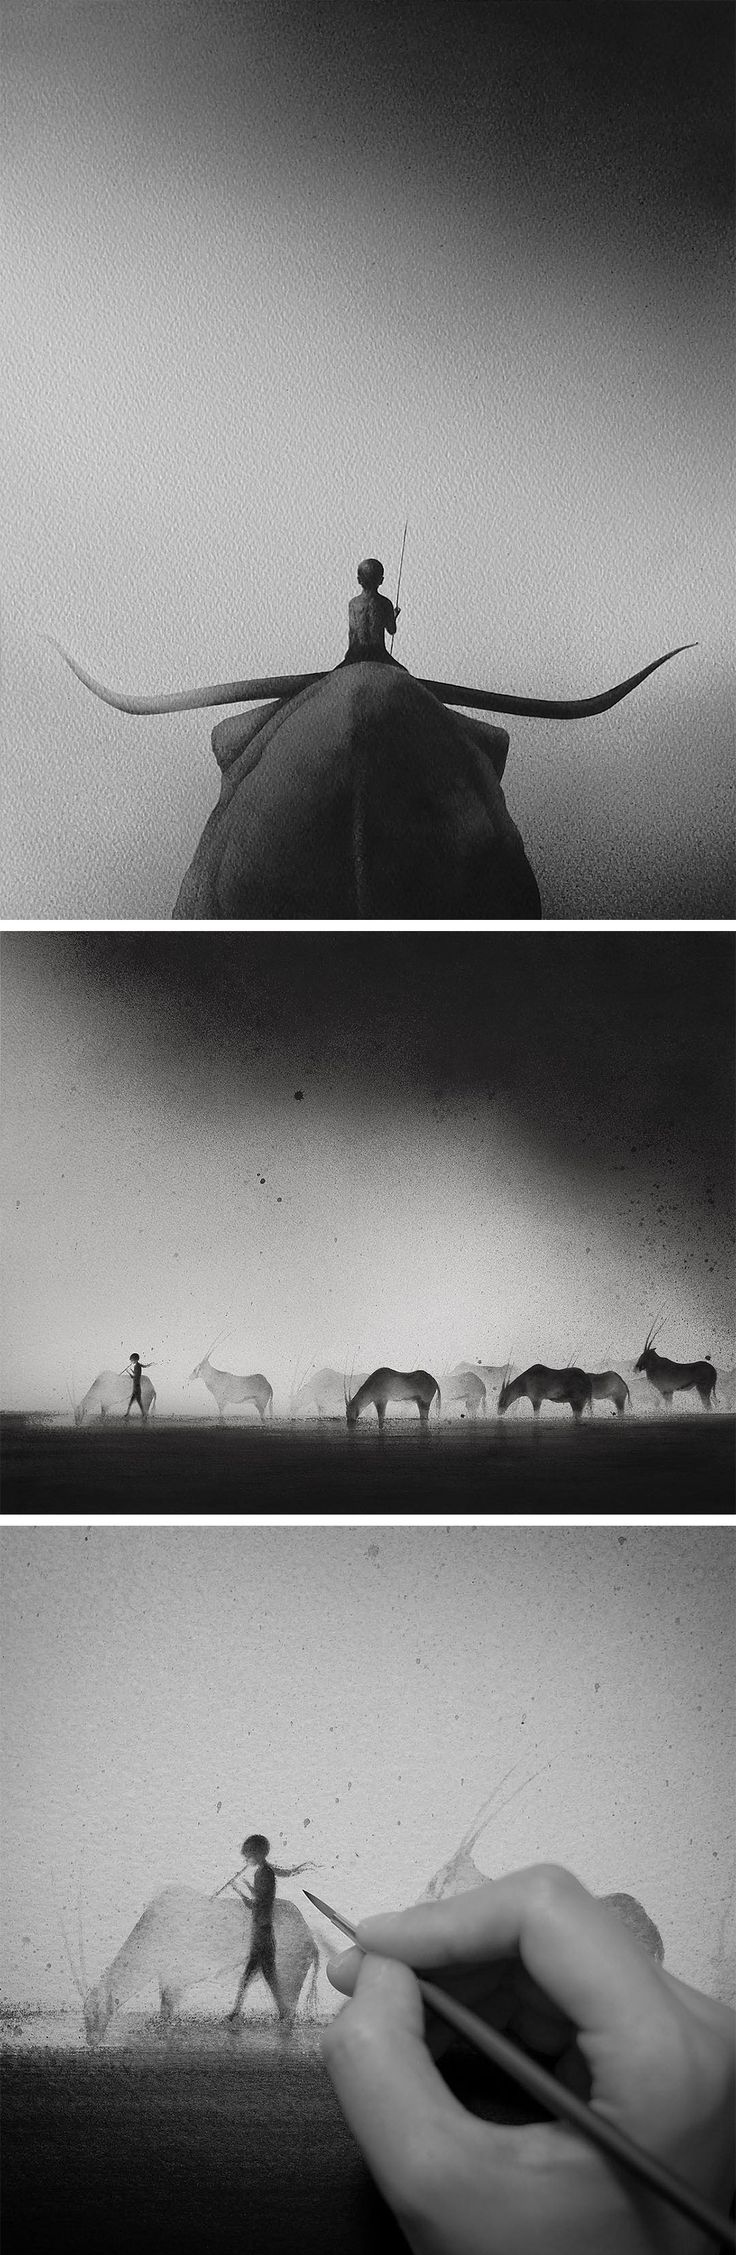 Hazy Black Watercolor Paintings of Children with Animals by Elicia Edijanto - Pinning this because this just came across my dash and I realized it's the artist that does some of the art for Sleeping at Last! (: